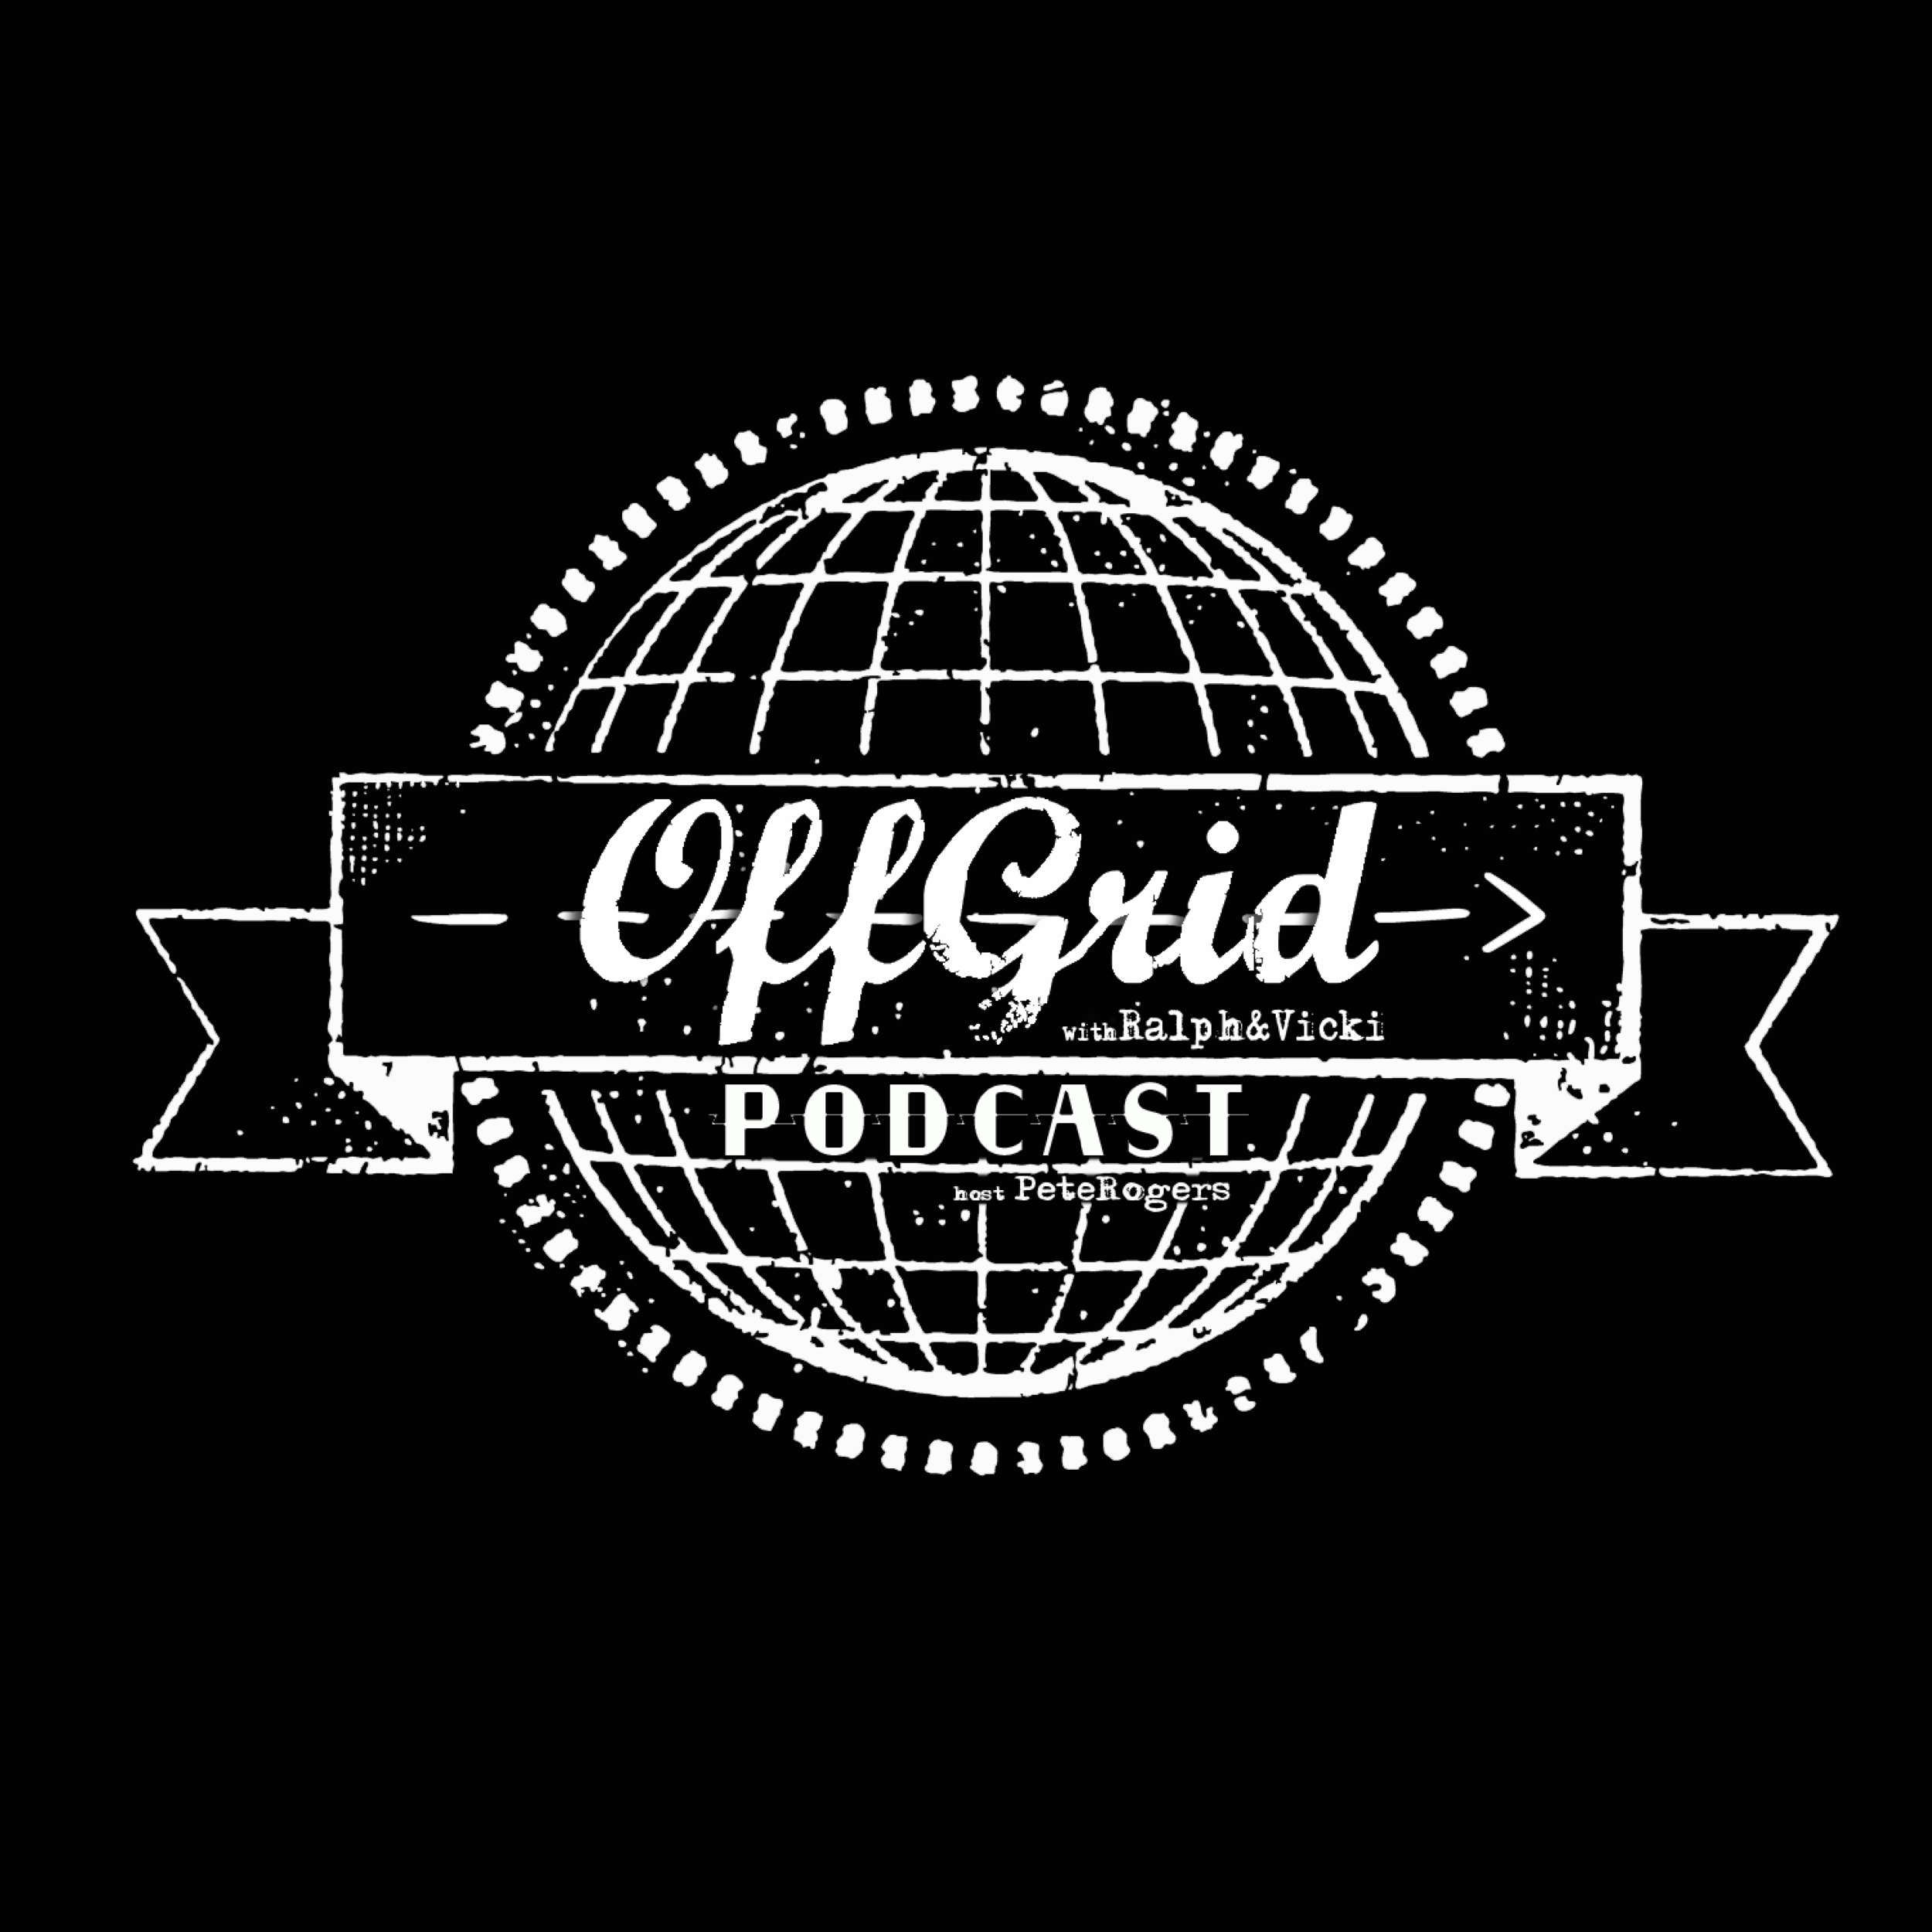 off-grid-podcast-fishing-hunting-waypoint-tv